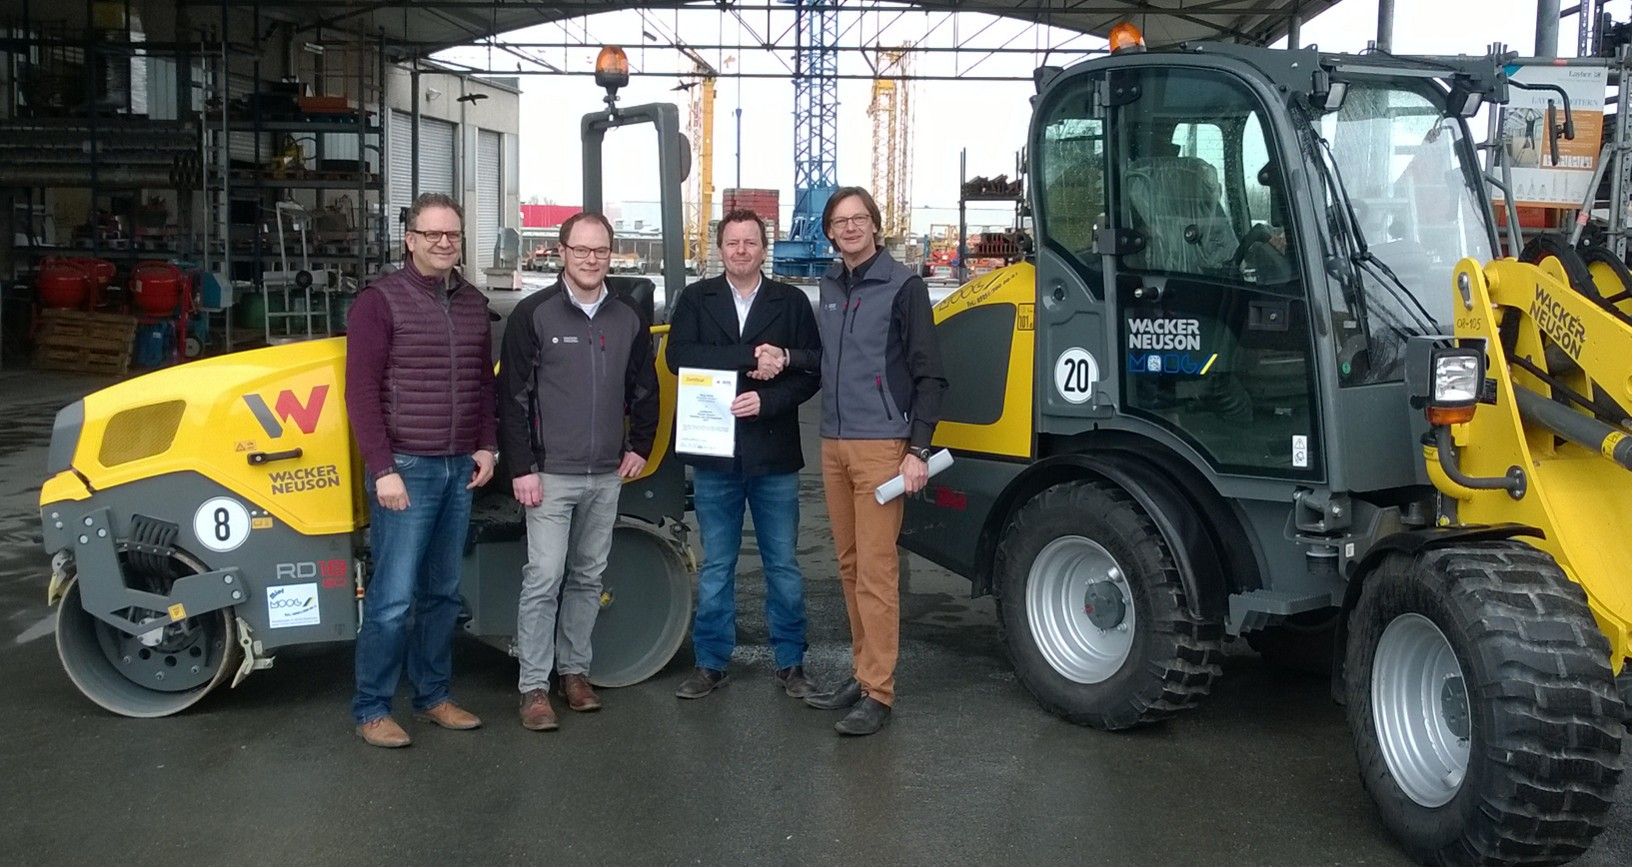 Moog Wacker Handels- & Servcepartner